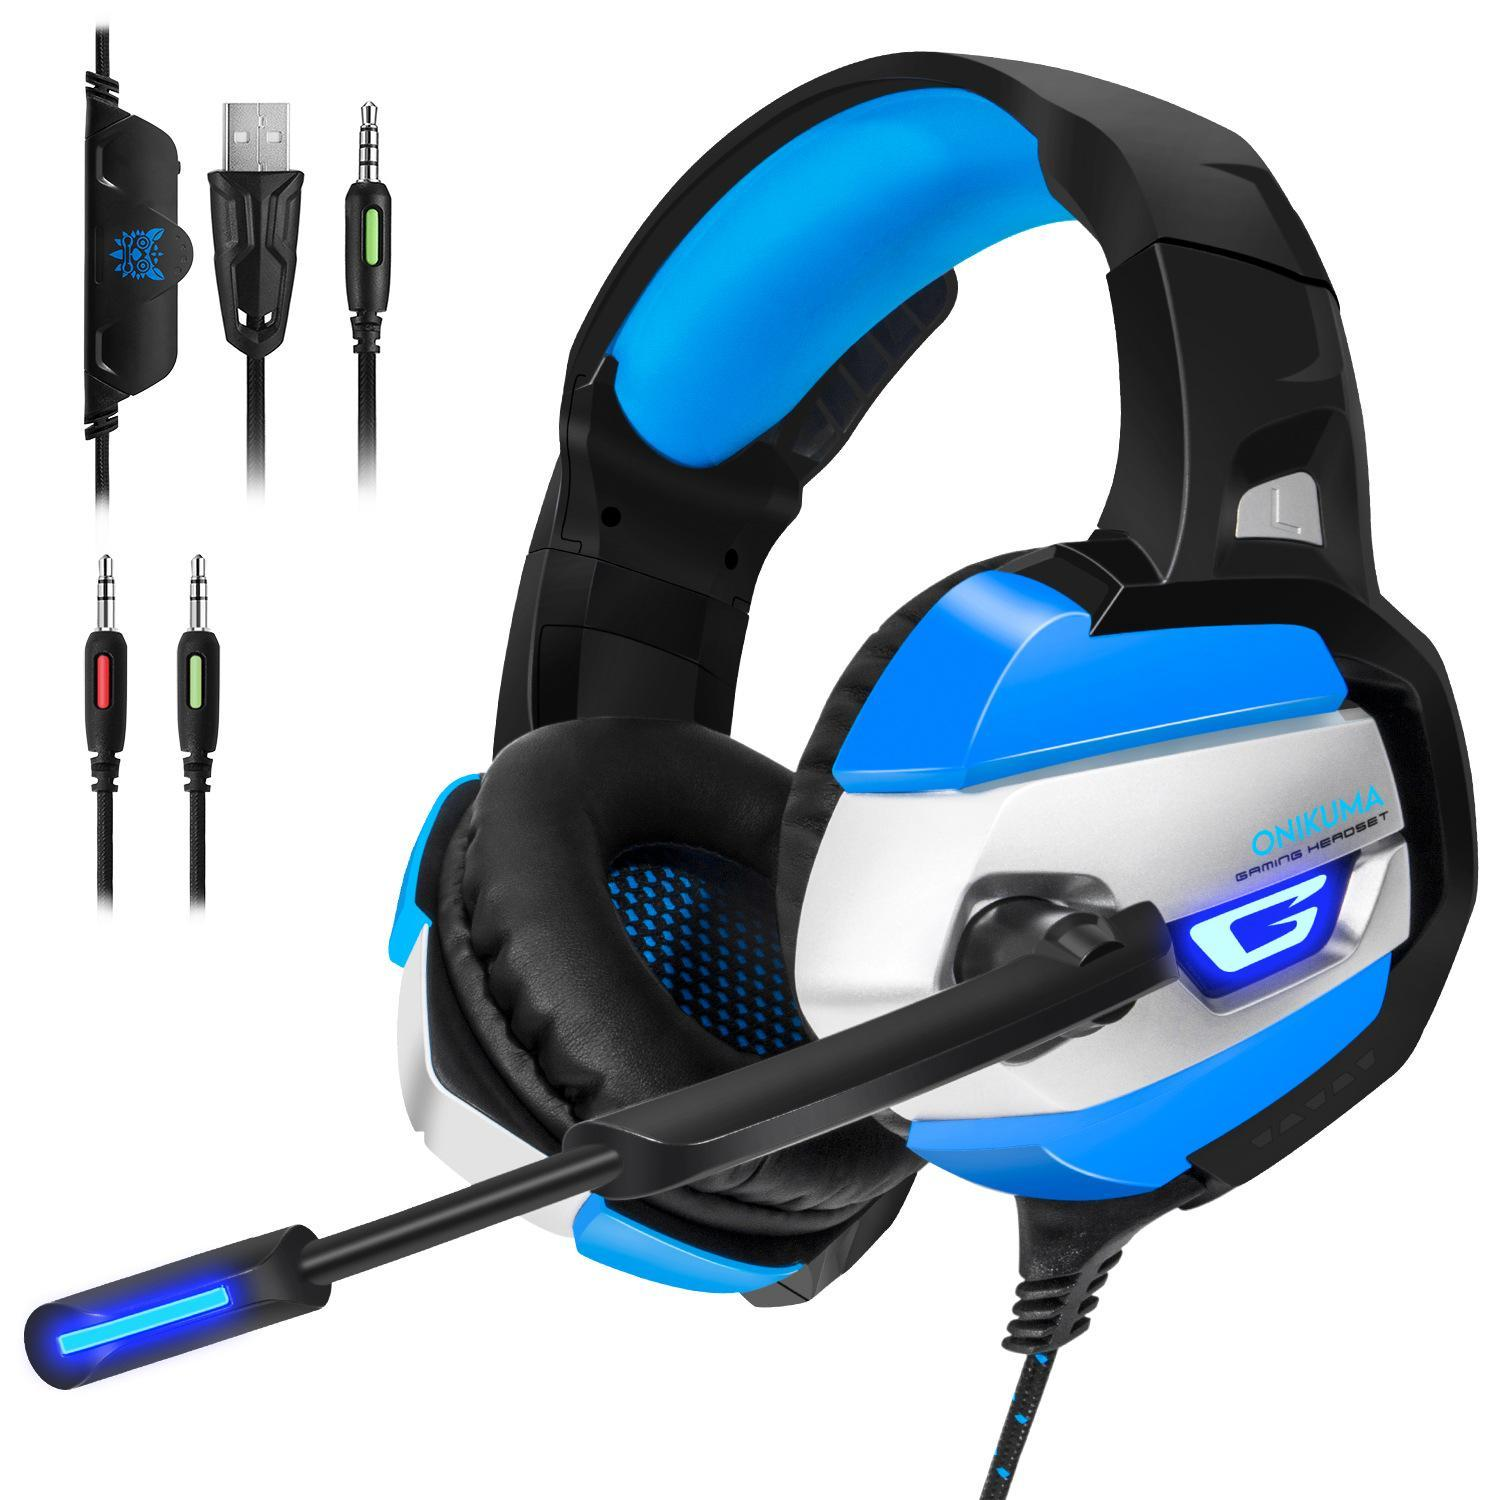 cgjxs Onikuma K5 Gaming Headset Gamer Casque Deep Bass Gaming Headphones For Ps4 Computer Pc Laptop Notebook With Microphone Led Light